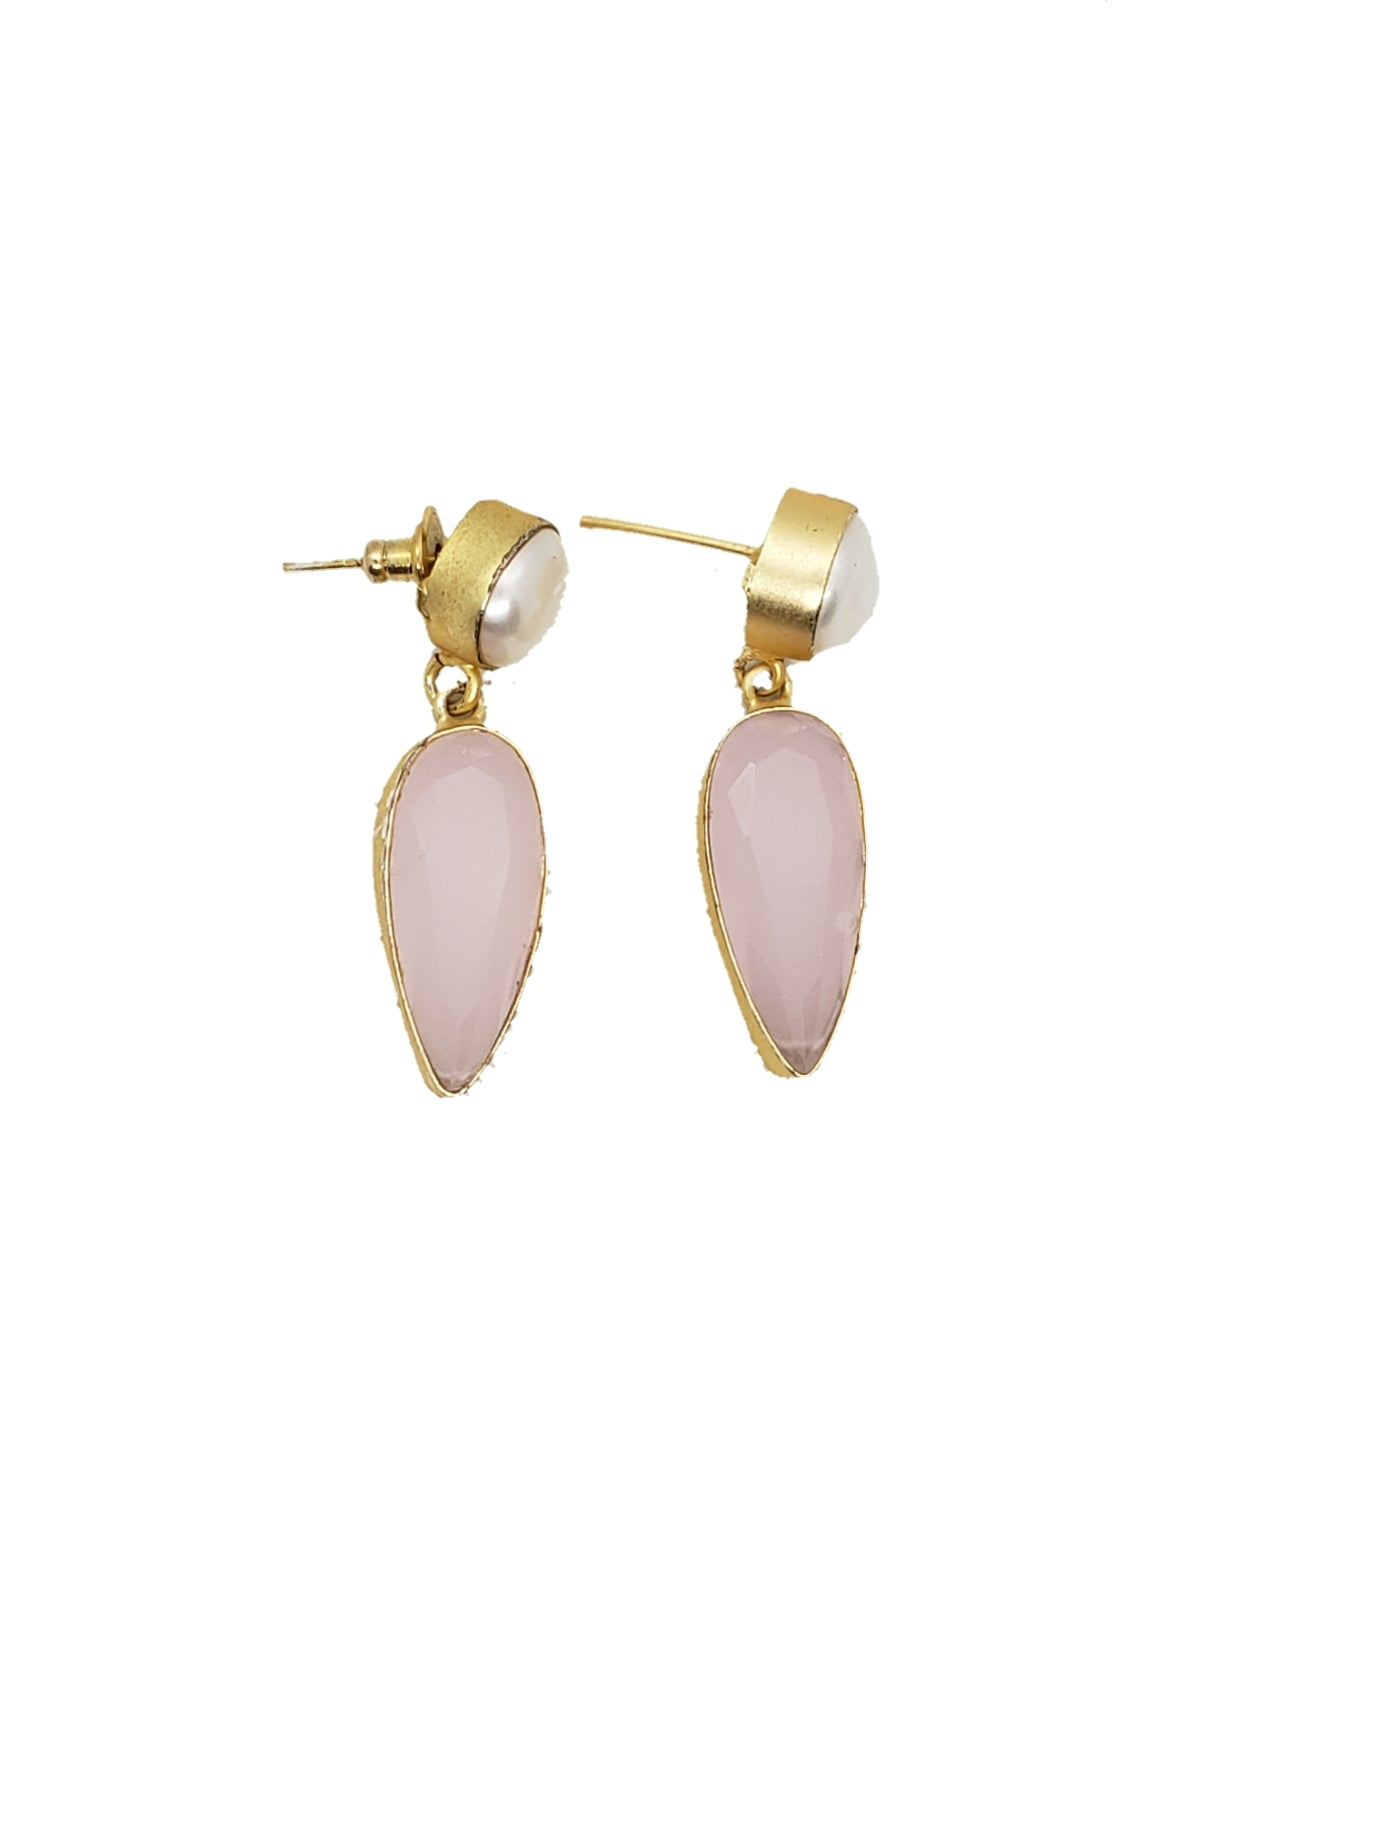 Rose Quartz and Pearl Earring - The Bauble Shop